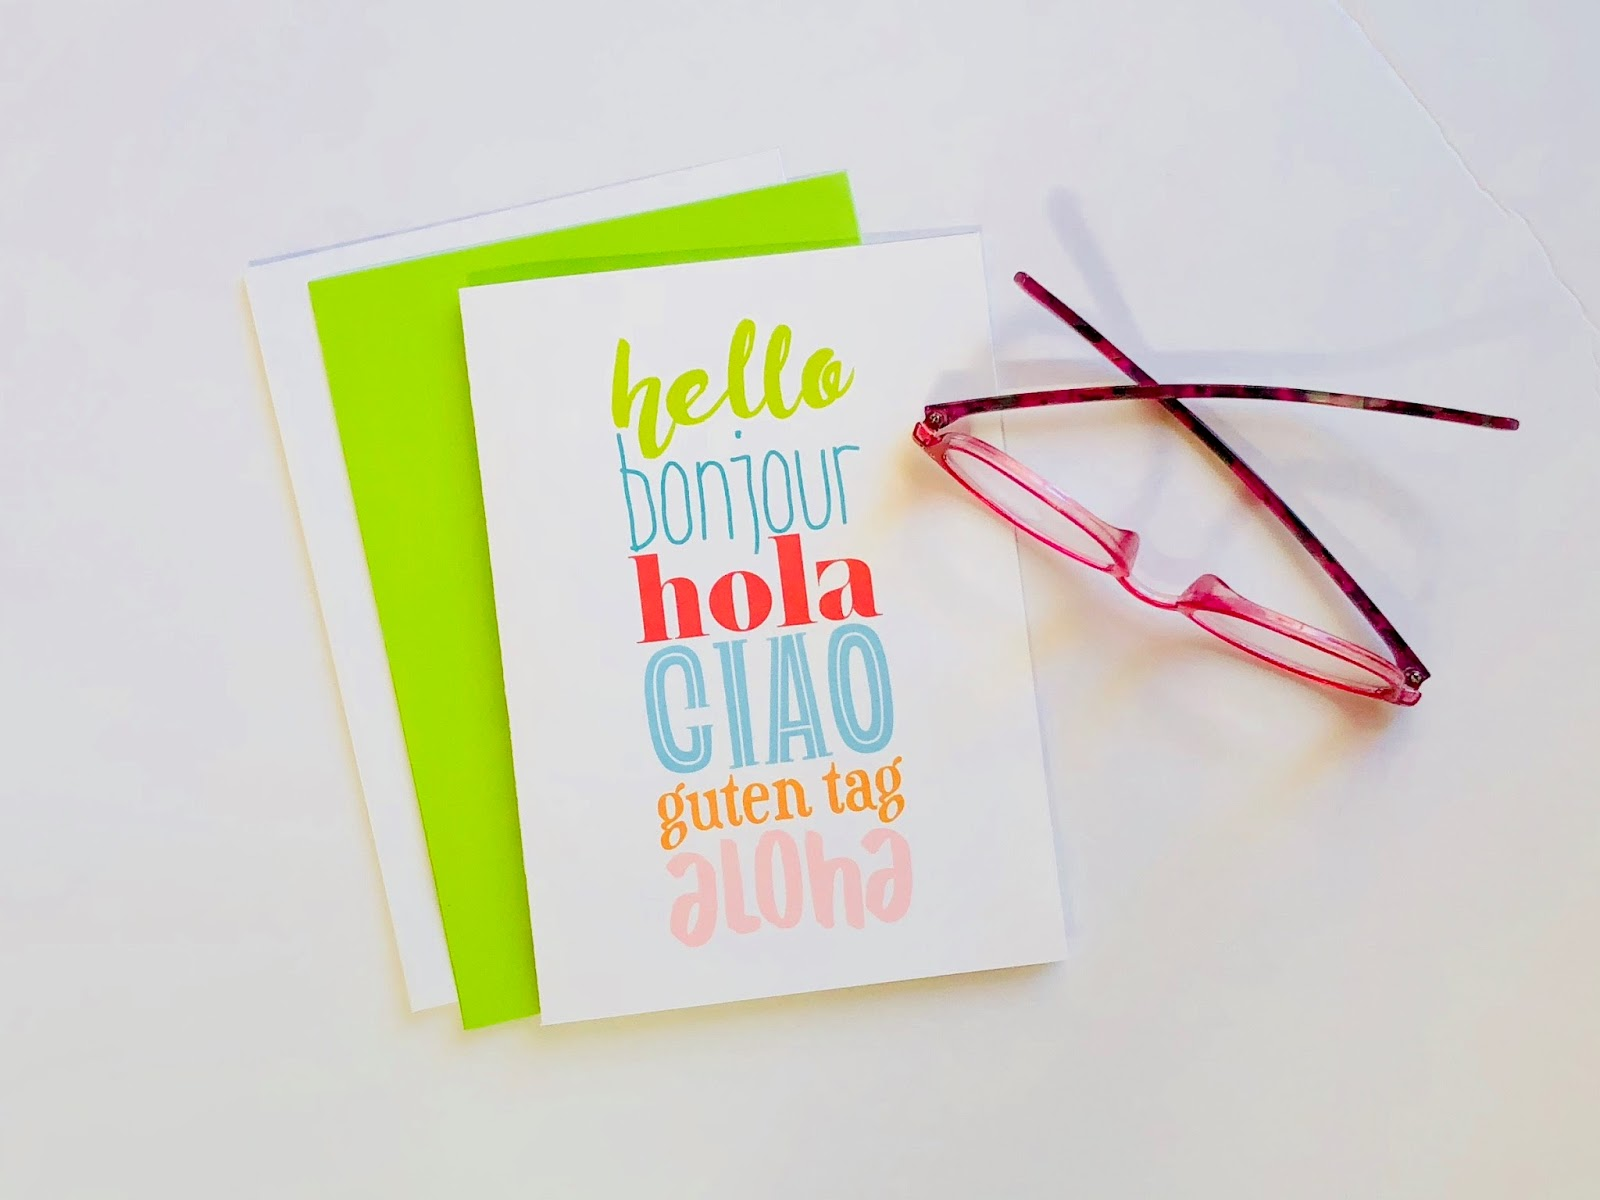 #notecard #Greeting Card #Hello #Mulitlingual #Hola #Ciao #Aloha